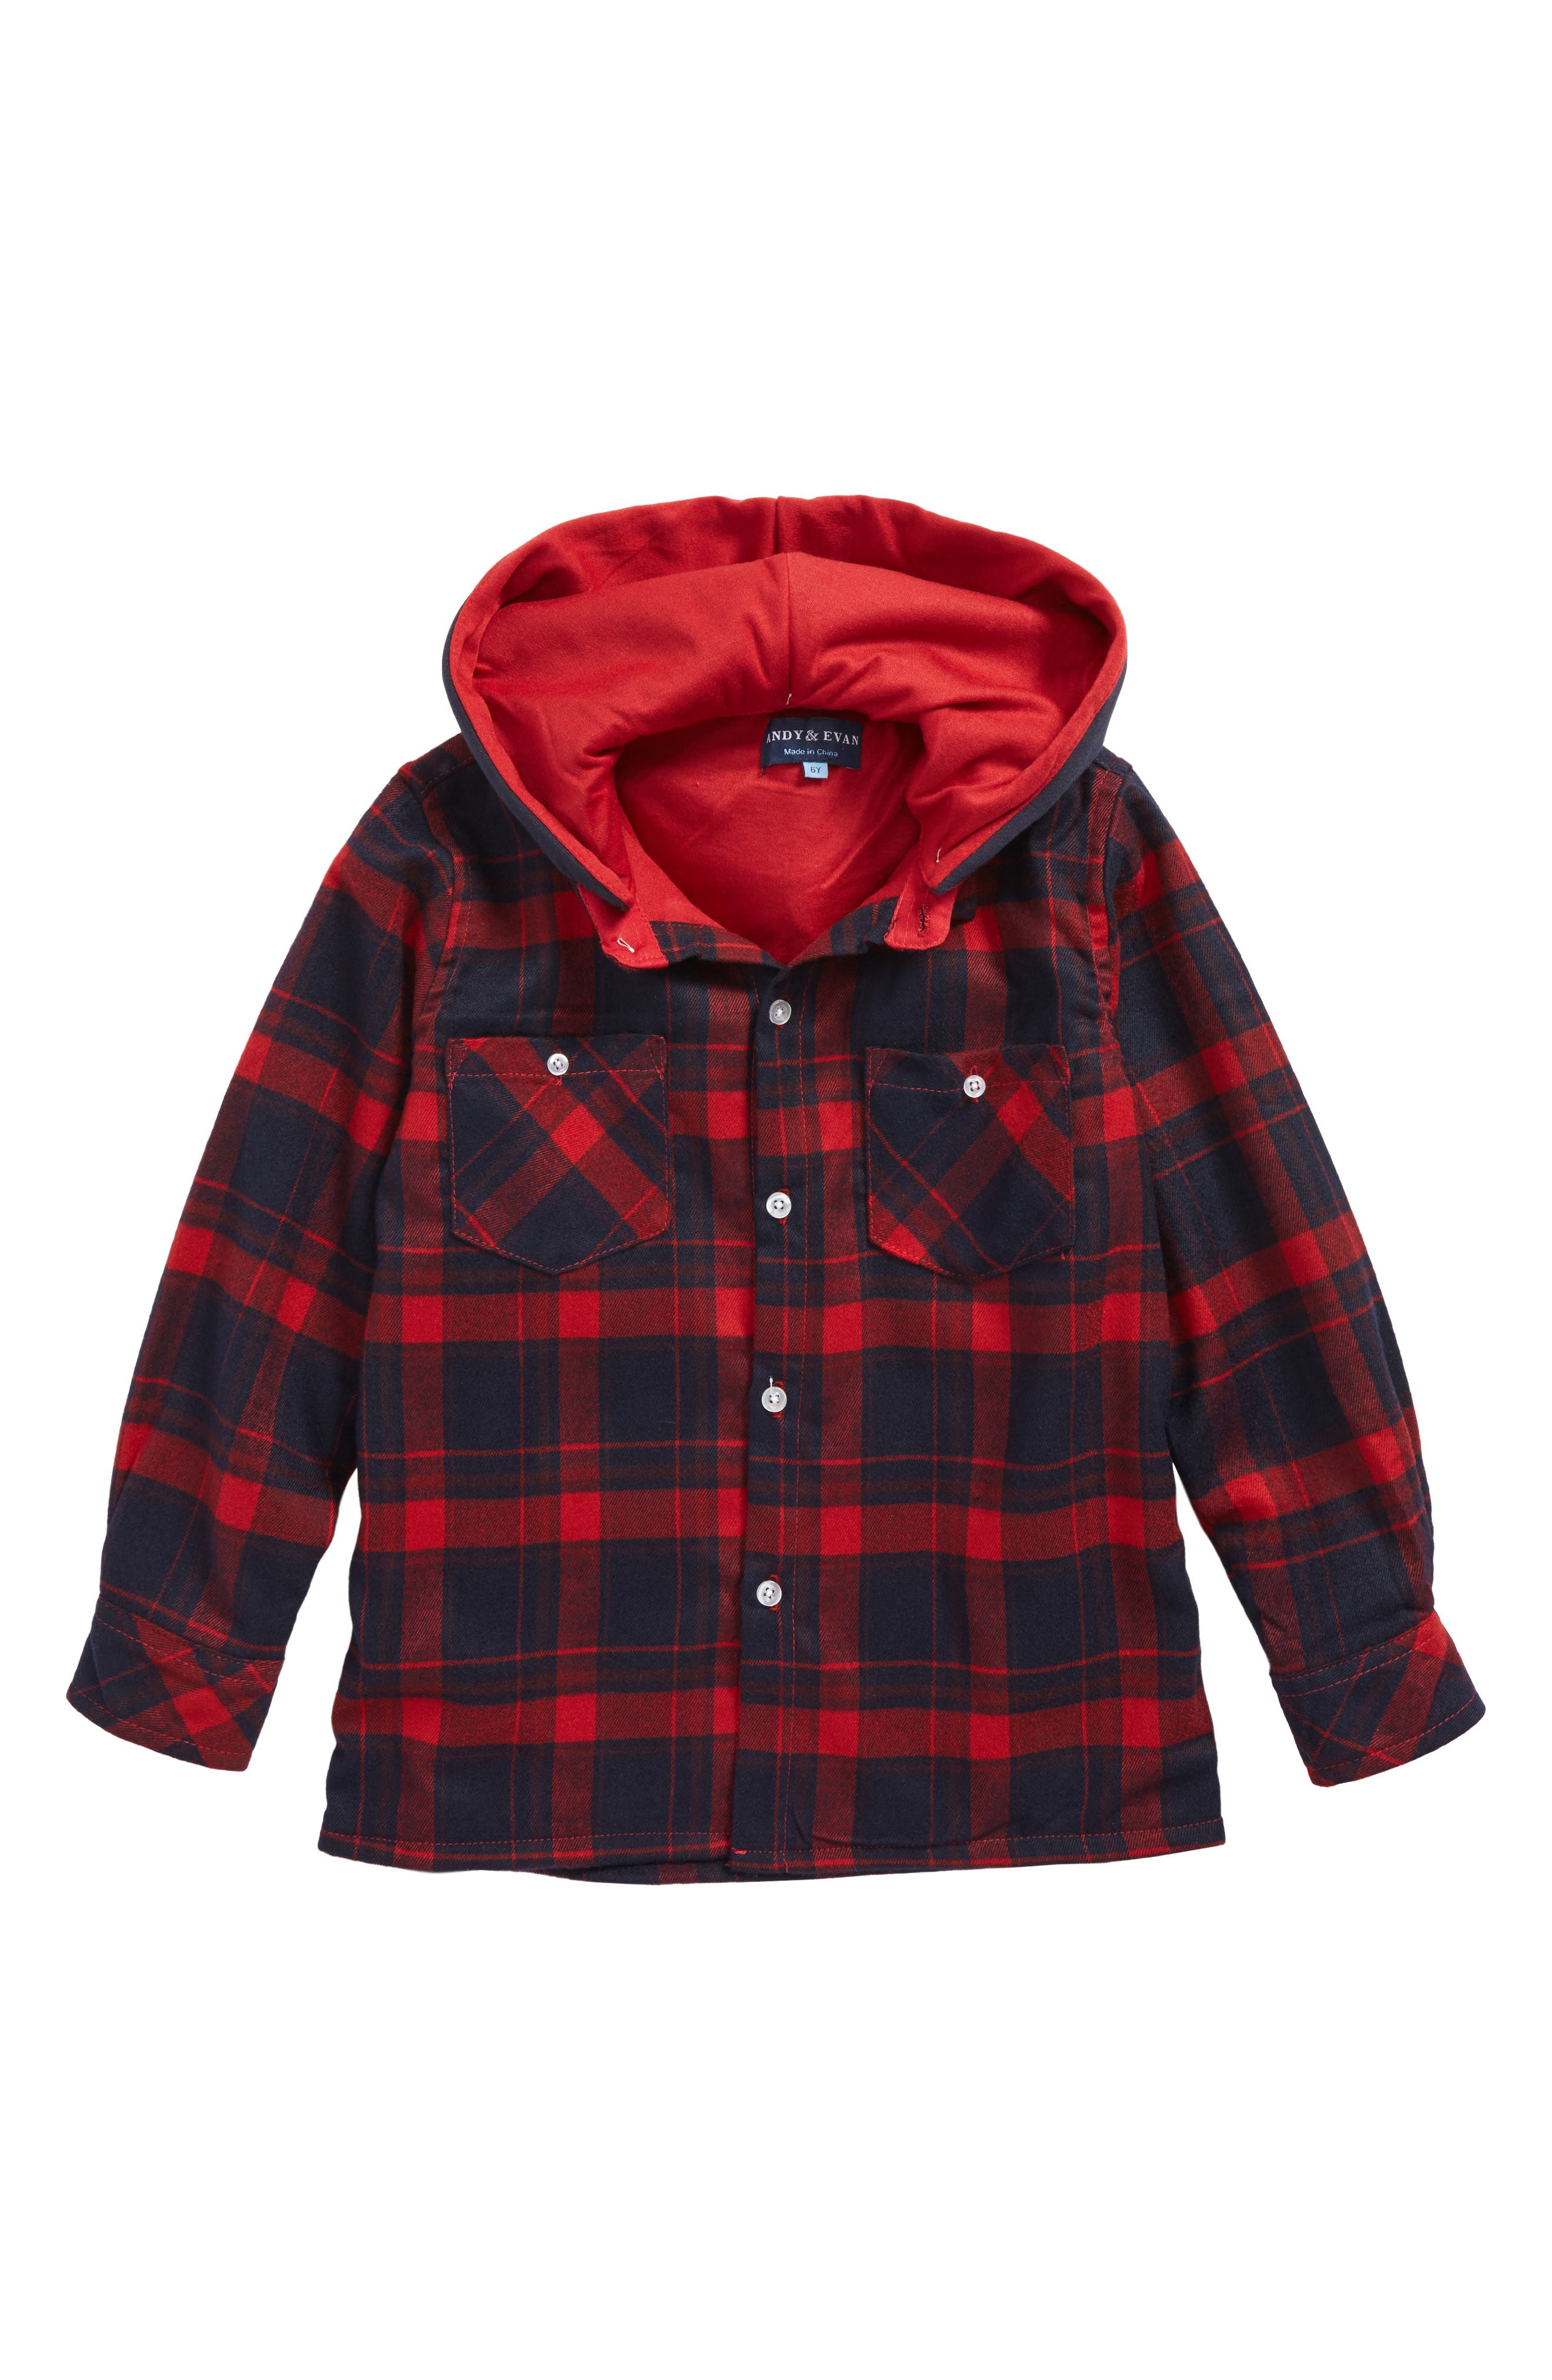 Main Image - Andy & Even Hooded Flannel Shirt (Toddler Boys & Little Boys)